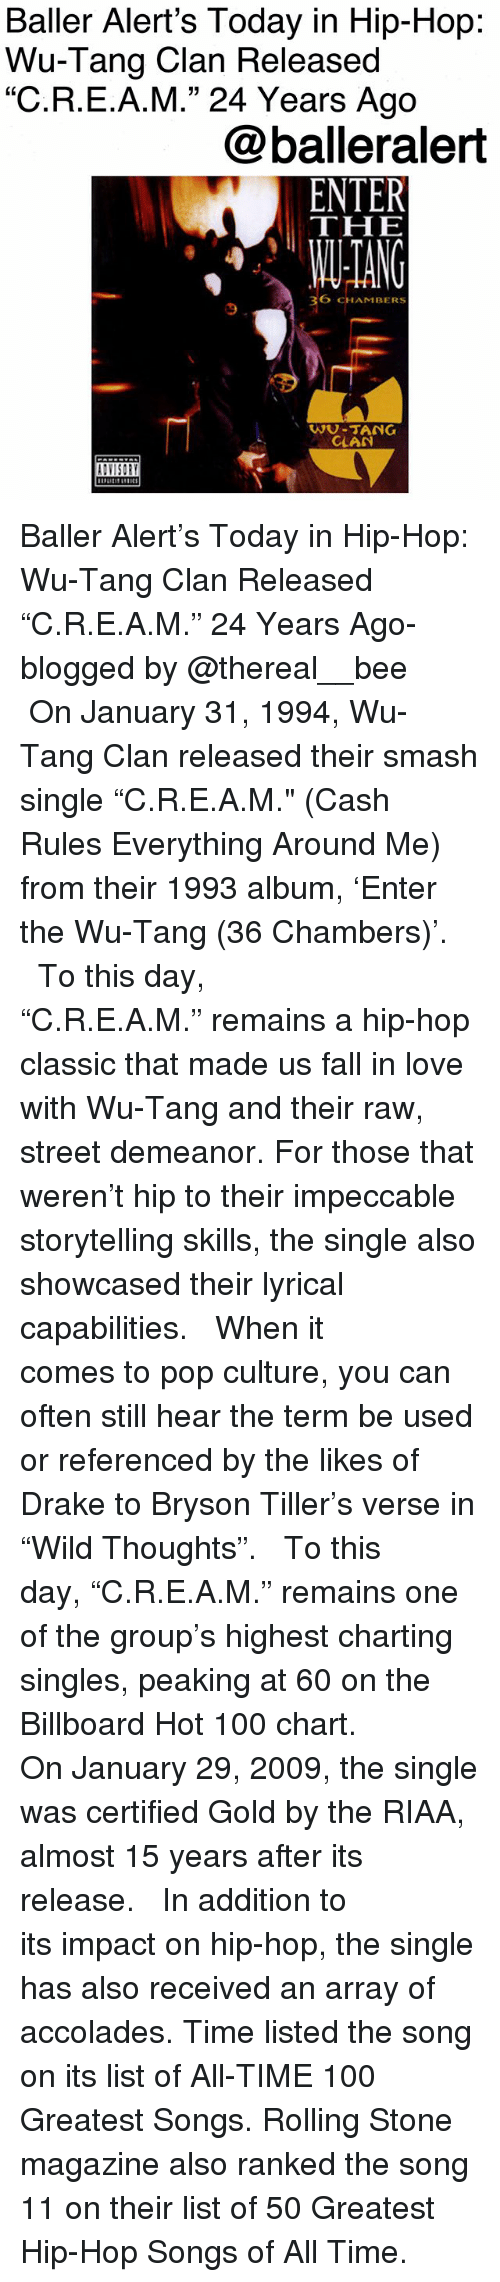 "Thereal: Baller Alert's Today in Hip-Hop:  Wu-Tang Clan Released  ""C.R.E.A.M."" 24 Years Ago  @balleralert  THE  ANG  36 CHAMBERS  9  WU-TANG  CLAN Baller Alert's Today in Hip-Hop: Wu-Tang Clan Released ""C.R.E.A.M."" 24 Years Ago-blogged by @thereal__bee ⠀⠀⠀⠀⠀⠀⠀ ⠀⠀⠀⠀ On January 31, 1994, Wu-Tang Clan released their smash single ""C.R.E.A.M."" (Cash Rules Everything Around Me) from their 1993 album, 'Enter the Wu-Tang (36 Chambers)'. ⠀⠀⠀⠀⠀⠀⠀ ⠀⠀⠀⠀ To this day, ""C.R.E.A.M."" remains a hip-hop classic that made us fall in love with Wu-Tang and their raw, street demeanor. For those that weren't hip to their impeccable storytelling skills, the single also showcased their lyrical capabilities. ⠀⠀⠀⠀⠀⠀⠀ ⠀⠀⠀⠀ When it comes to pop culture, you can often still hear the term be used or referenced by the likes of Drake to Bryson Tiller's verse in ""Wild Thoughts"". ⠀⠀⠀⠀⠀⠀⠀ ⠀⠀⠀⠀ To this day, ""C.R.E.A.M."" remains one of the group's highest charting singles, peaking at 60 on the Billboard Hot 100 chart. ⠀⠀⠀⠀⠀⠀⠀ ⠀⠀⠀⠀ On January 29, 2009, the single was certified Gold by the RIAA, almost 15 years after its release. ⠀⠀⠀⠀⠀⠀⠀ ⠀⠀⠀⠀ In addition to its impact on hip-hop, the single has also received an array of accolades. Time listed the song on its list of All-TIME 100 Greatest Songs. Rolling Stone magazine also ranked the song 11 on their list of 50 Greatest Hip-Hop Songs of All Time."